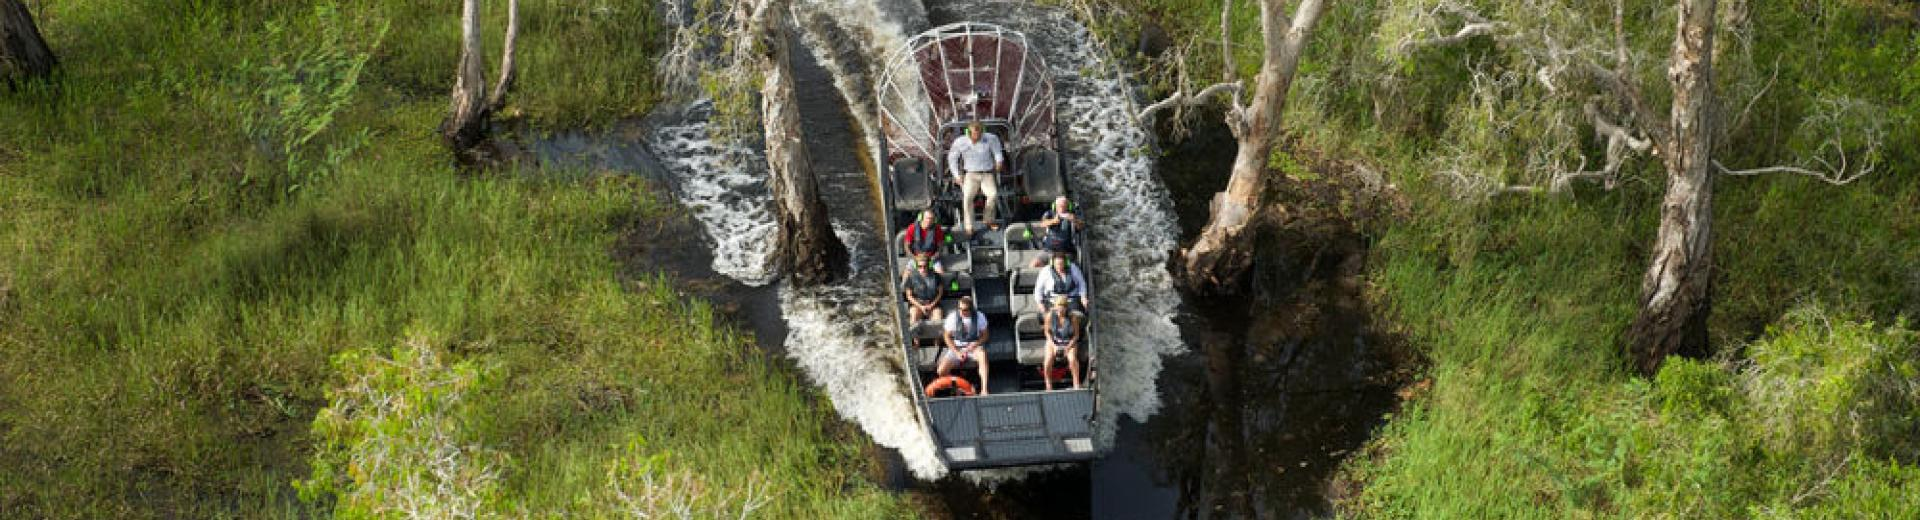 nt airboat